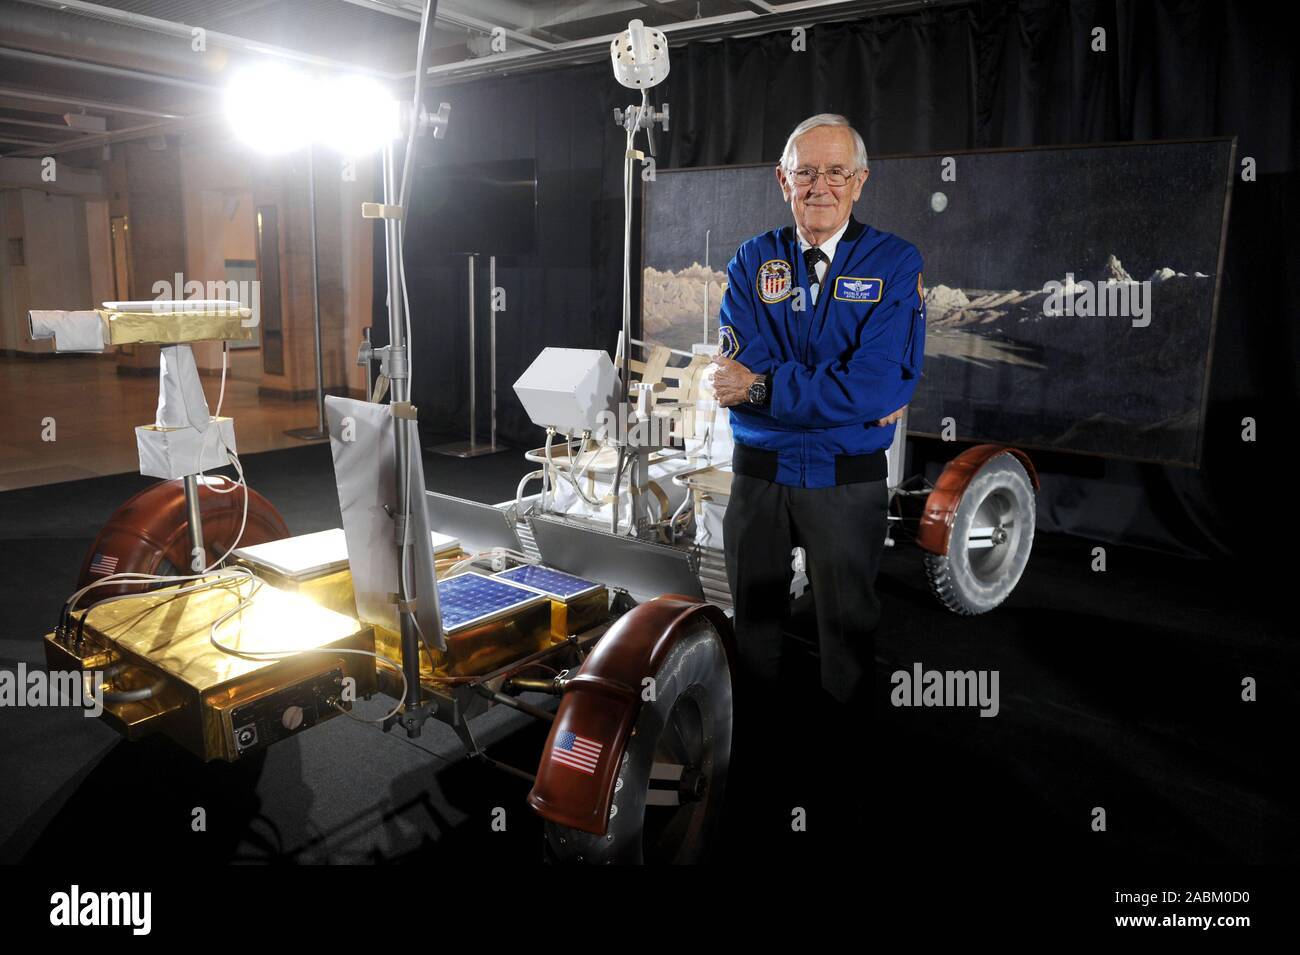 "The US astronaut Charles ""Charlie"" Moss Duke talks about his experiences in space at the Deutsches Museum. Duke piloted the lunar module of the Apollo 16 mission in 1972 and drove over the moon by car after landing. The picture shows the youngest Moonwalker to date with a replica of a rover. [automated translation] Stock Photo"